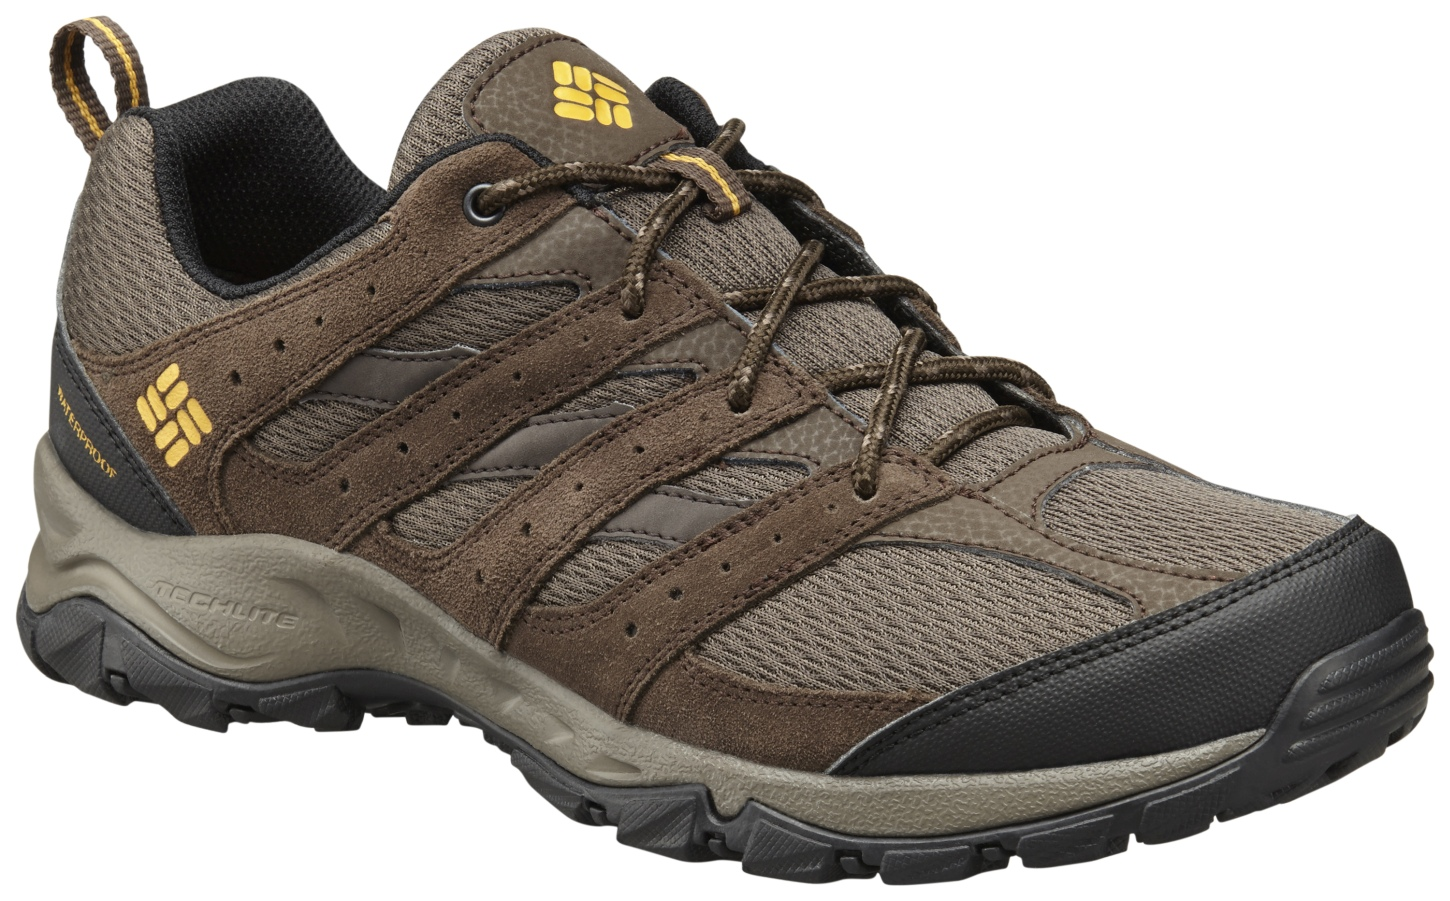 Columbia Men's Plains Butte Low Waterproof Trail Shoes Cordovan, Squash-30